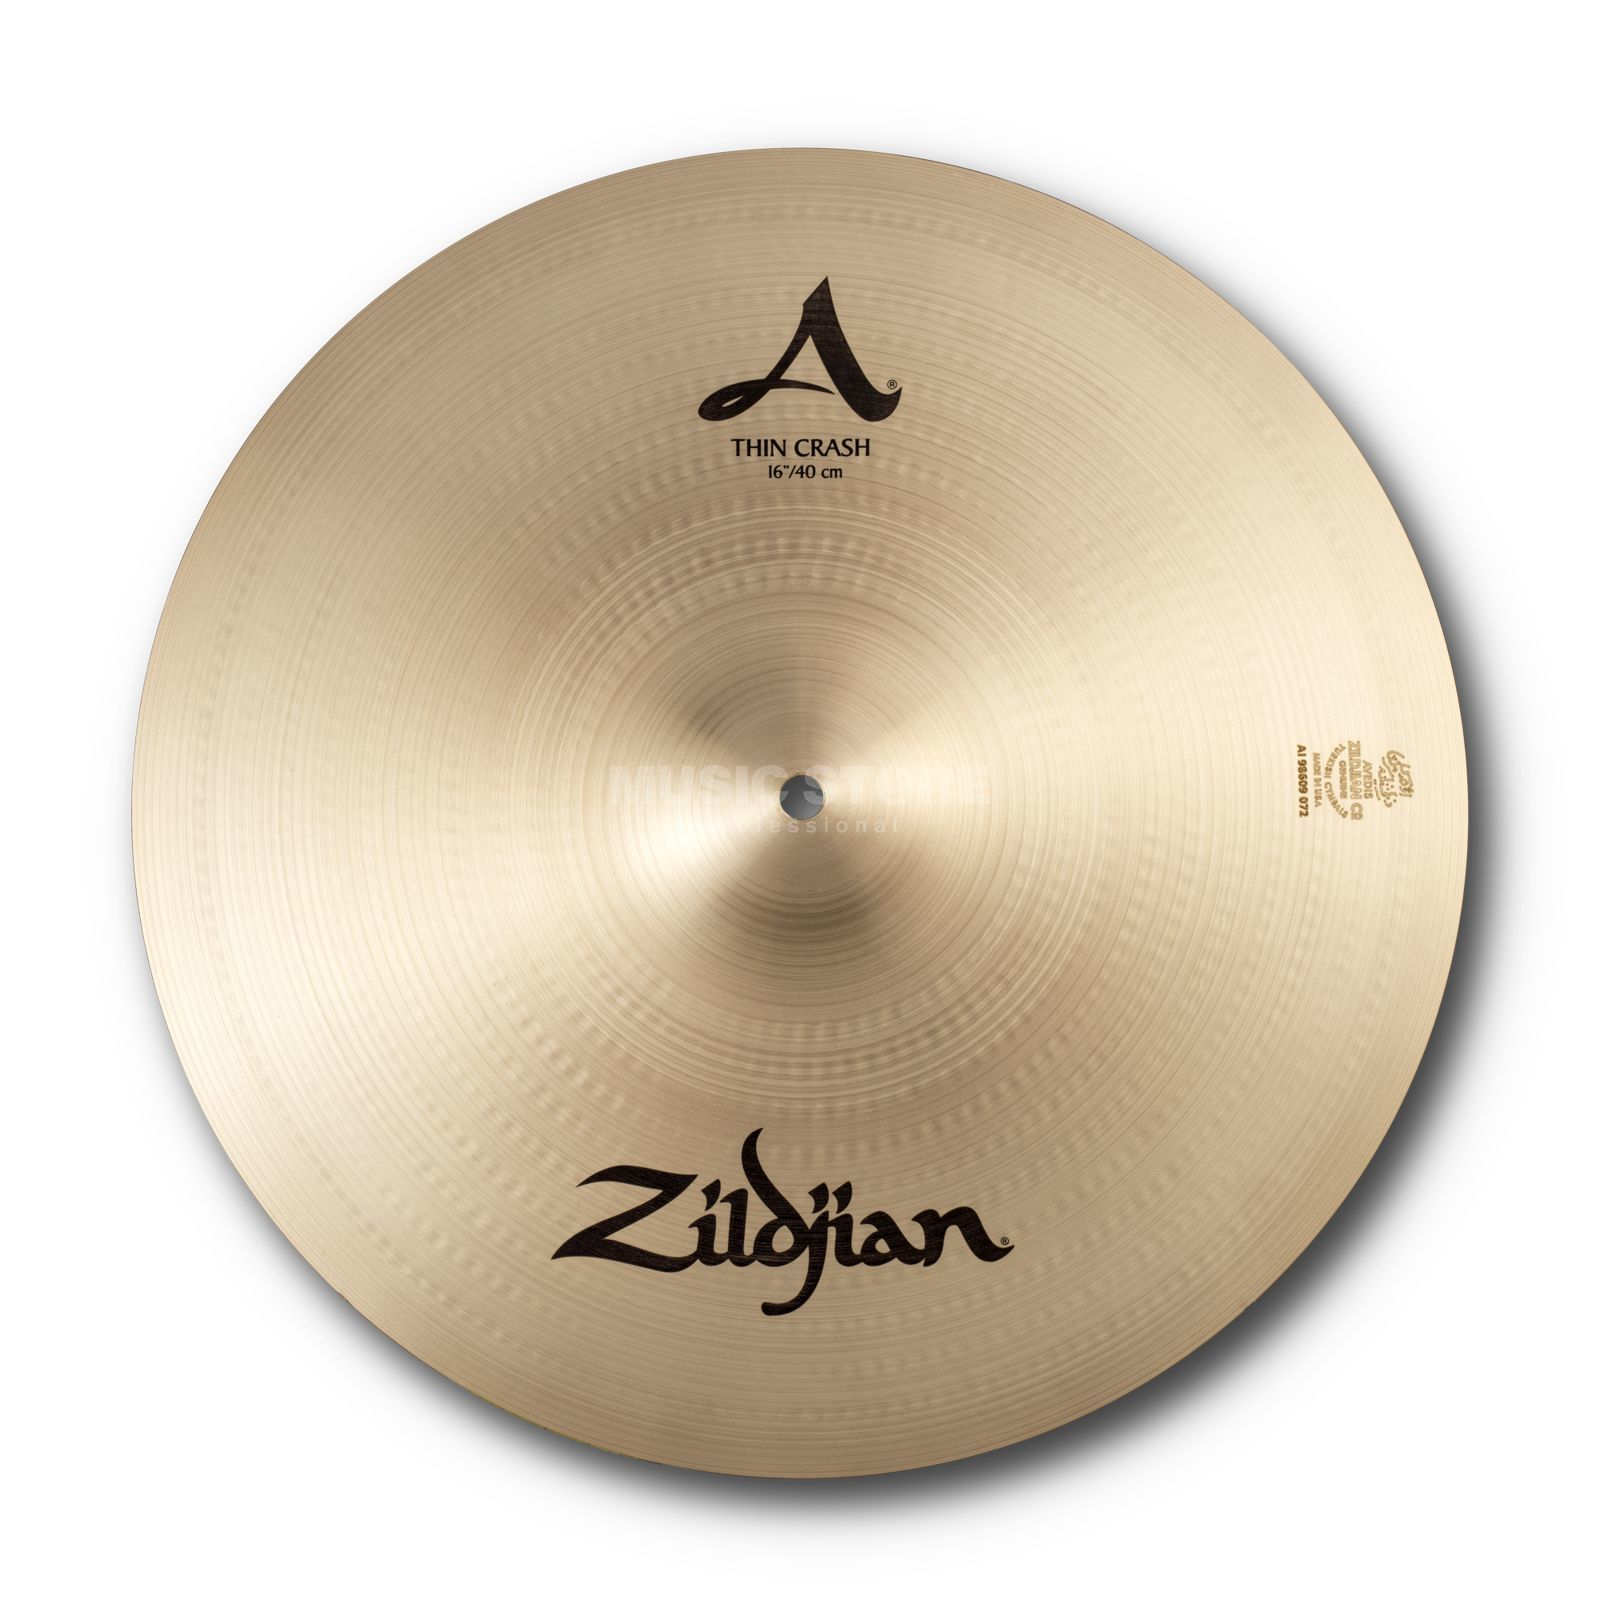 "Zildjian A' Zildjian Thin Crash 16"", Traditional Finish Productafbeelding"